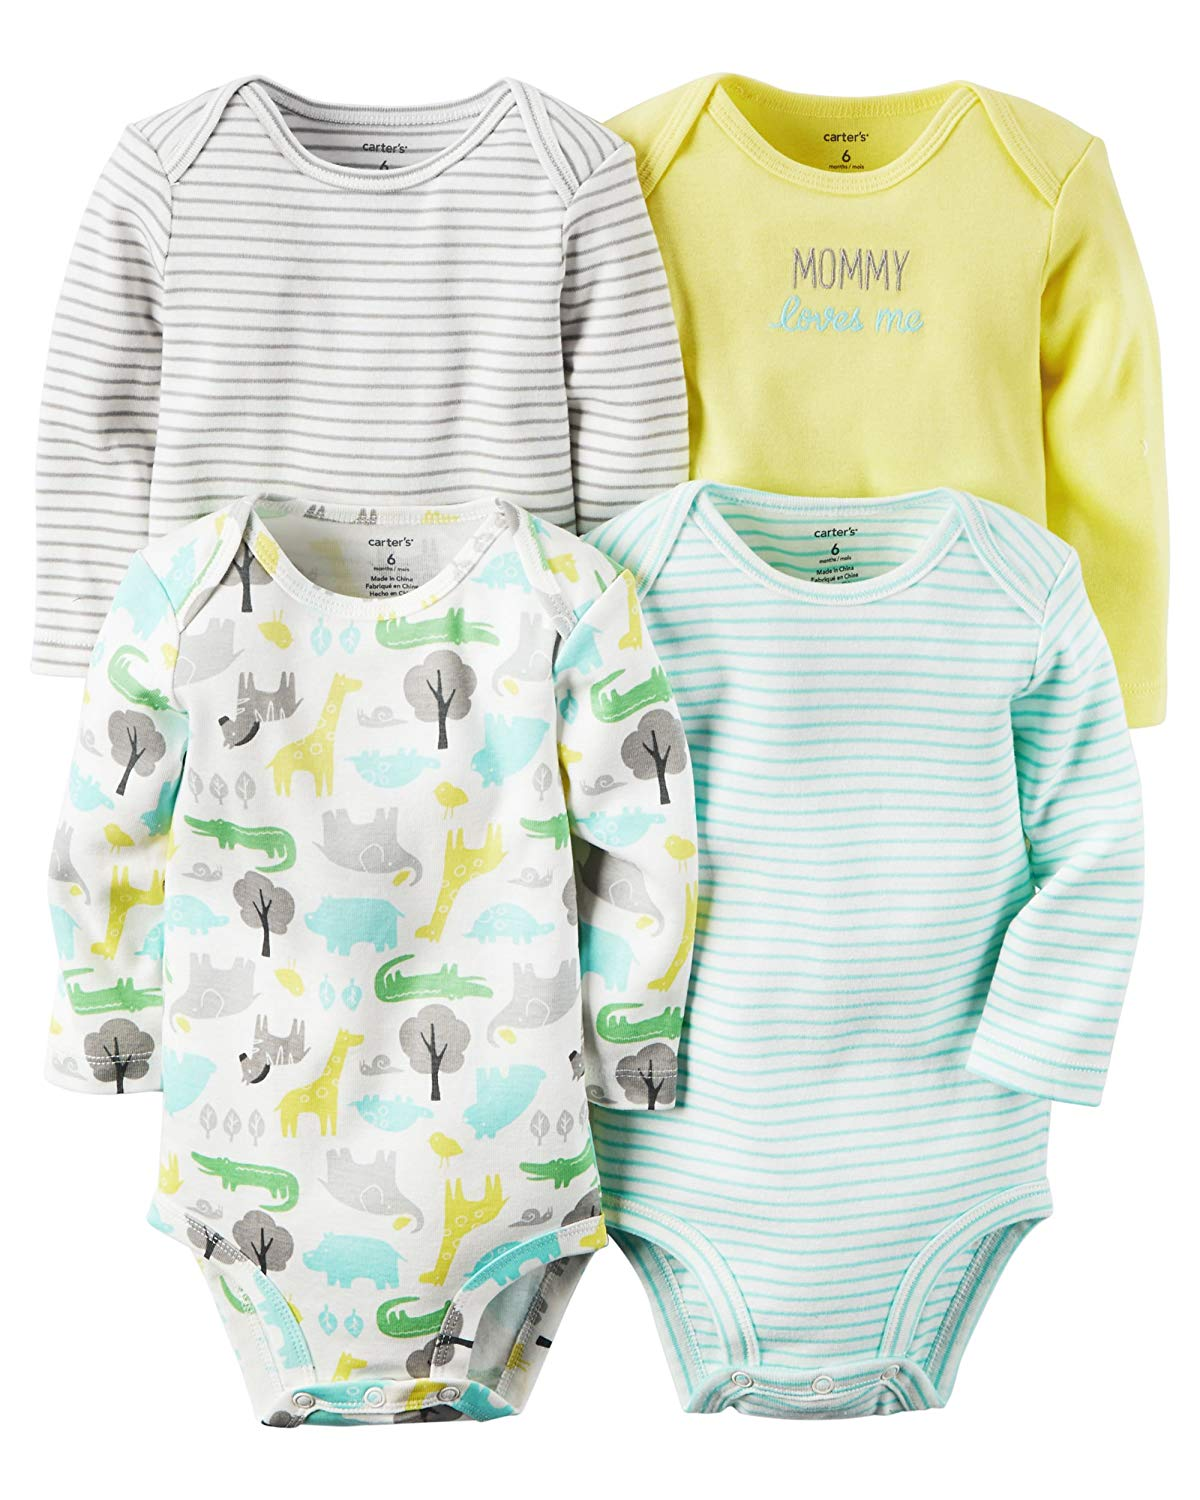 93bce6fa1c Get Quotations · William Carter Baby Boys  4 Pack Long Sleeve Bodysuits  Undershirt Set (Baby) Animals